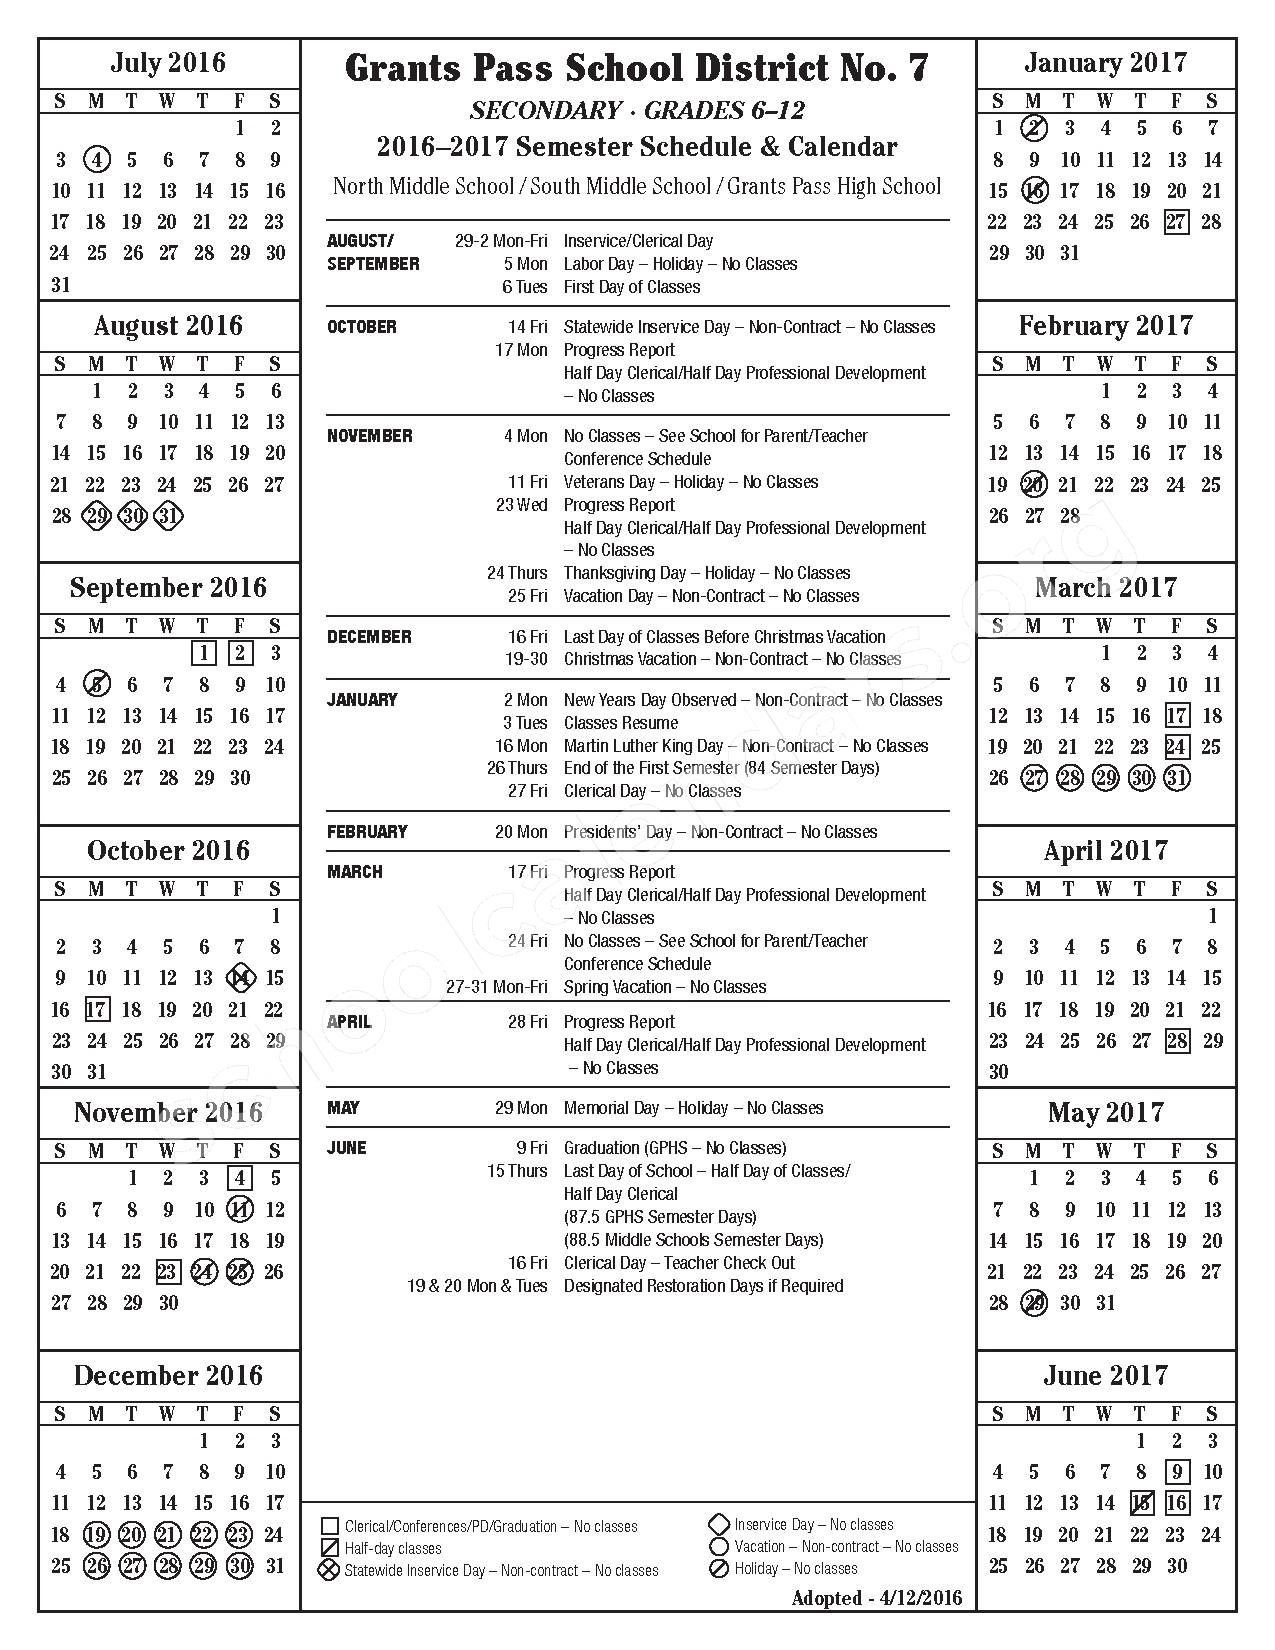 Grants Pass School District 7 Calendars